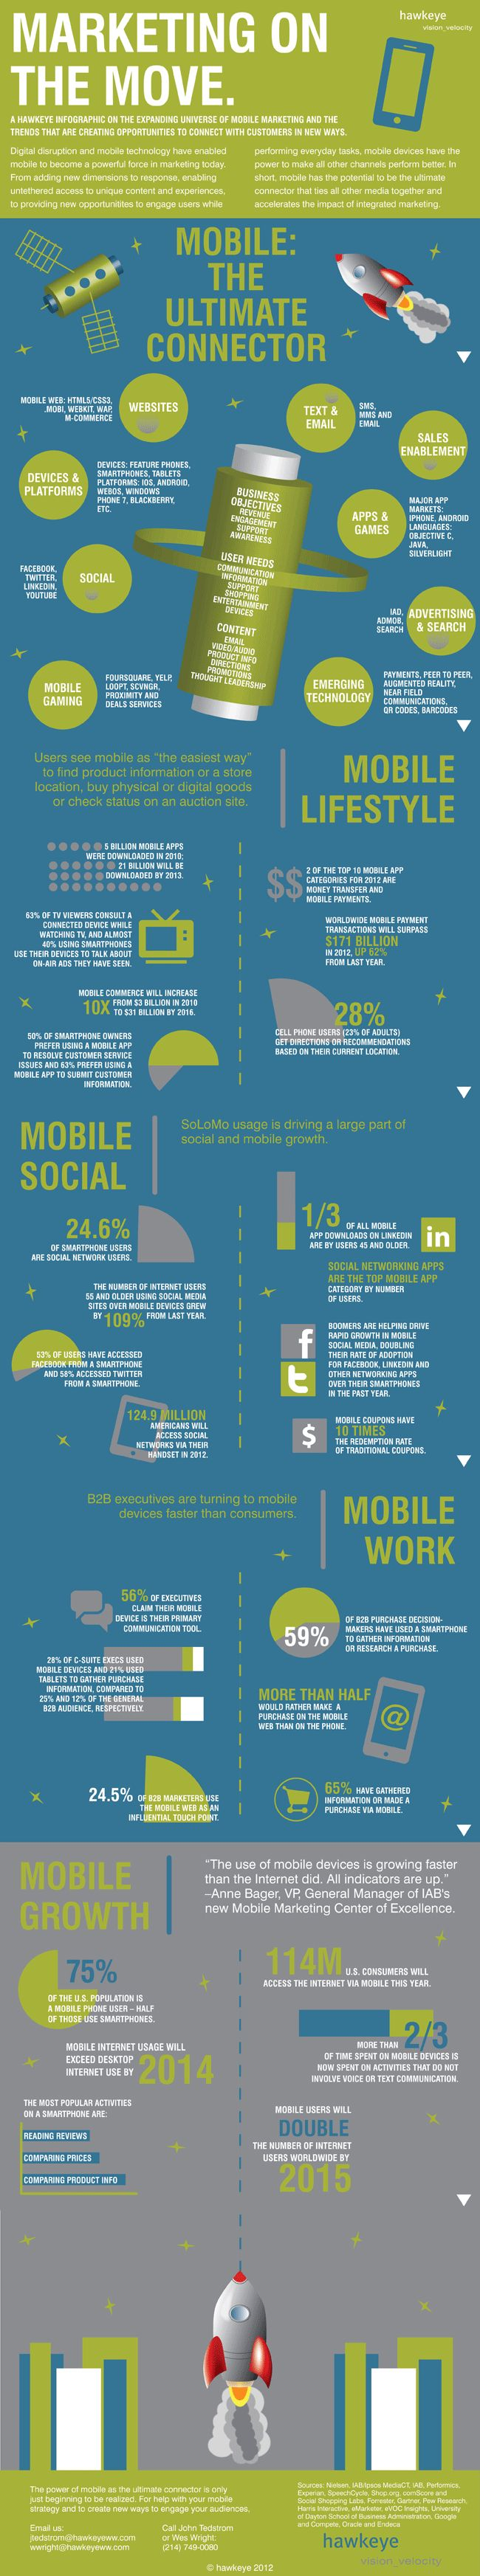 #Mobile #Marketing on the Move #Infographic #Onlinestrategy